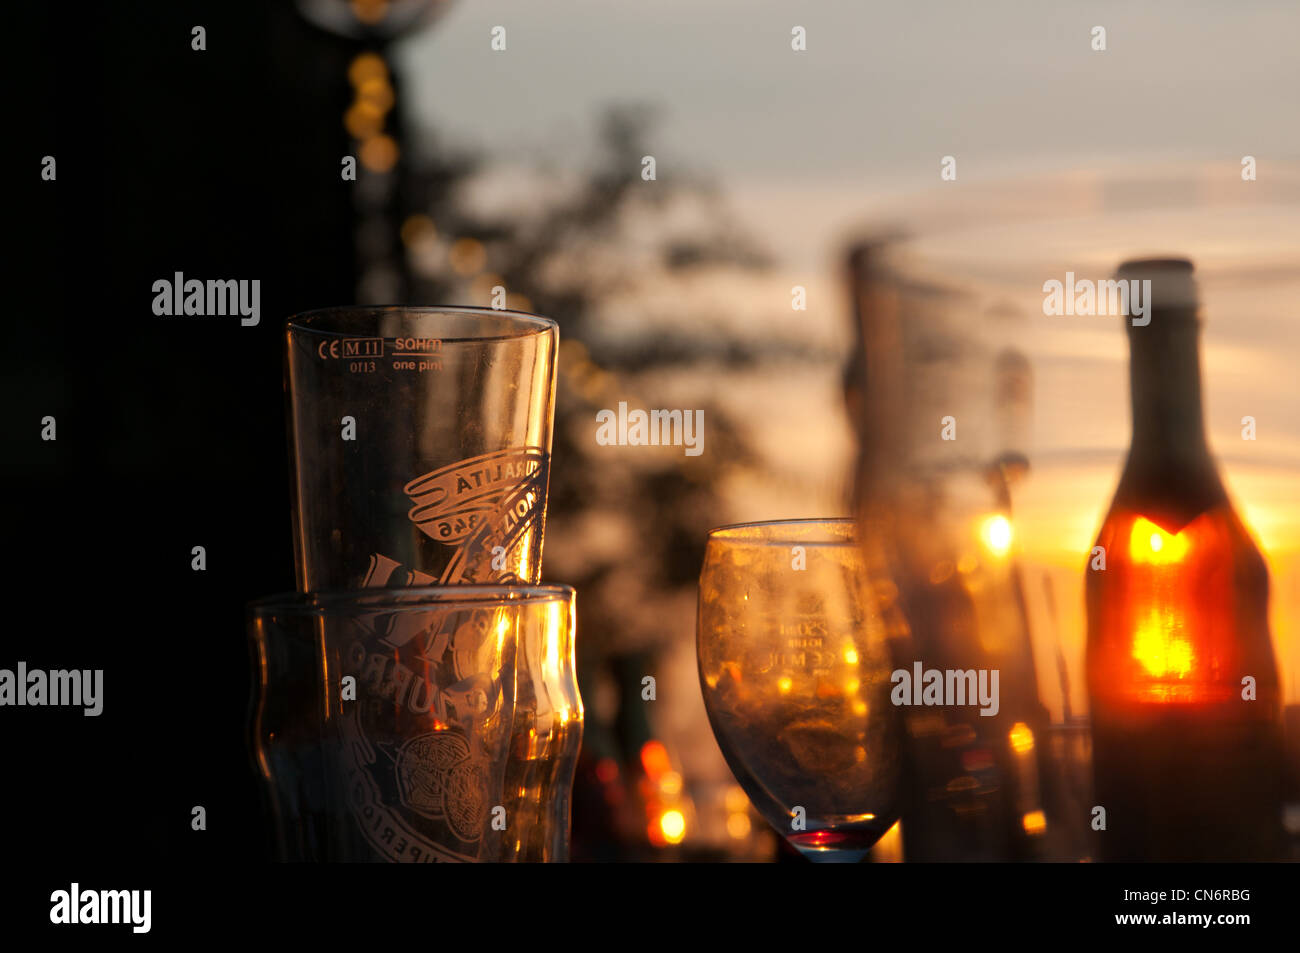 Empty pint glasses in the warm light of a London sunset. - Stock Image